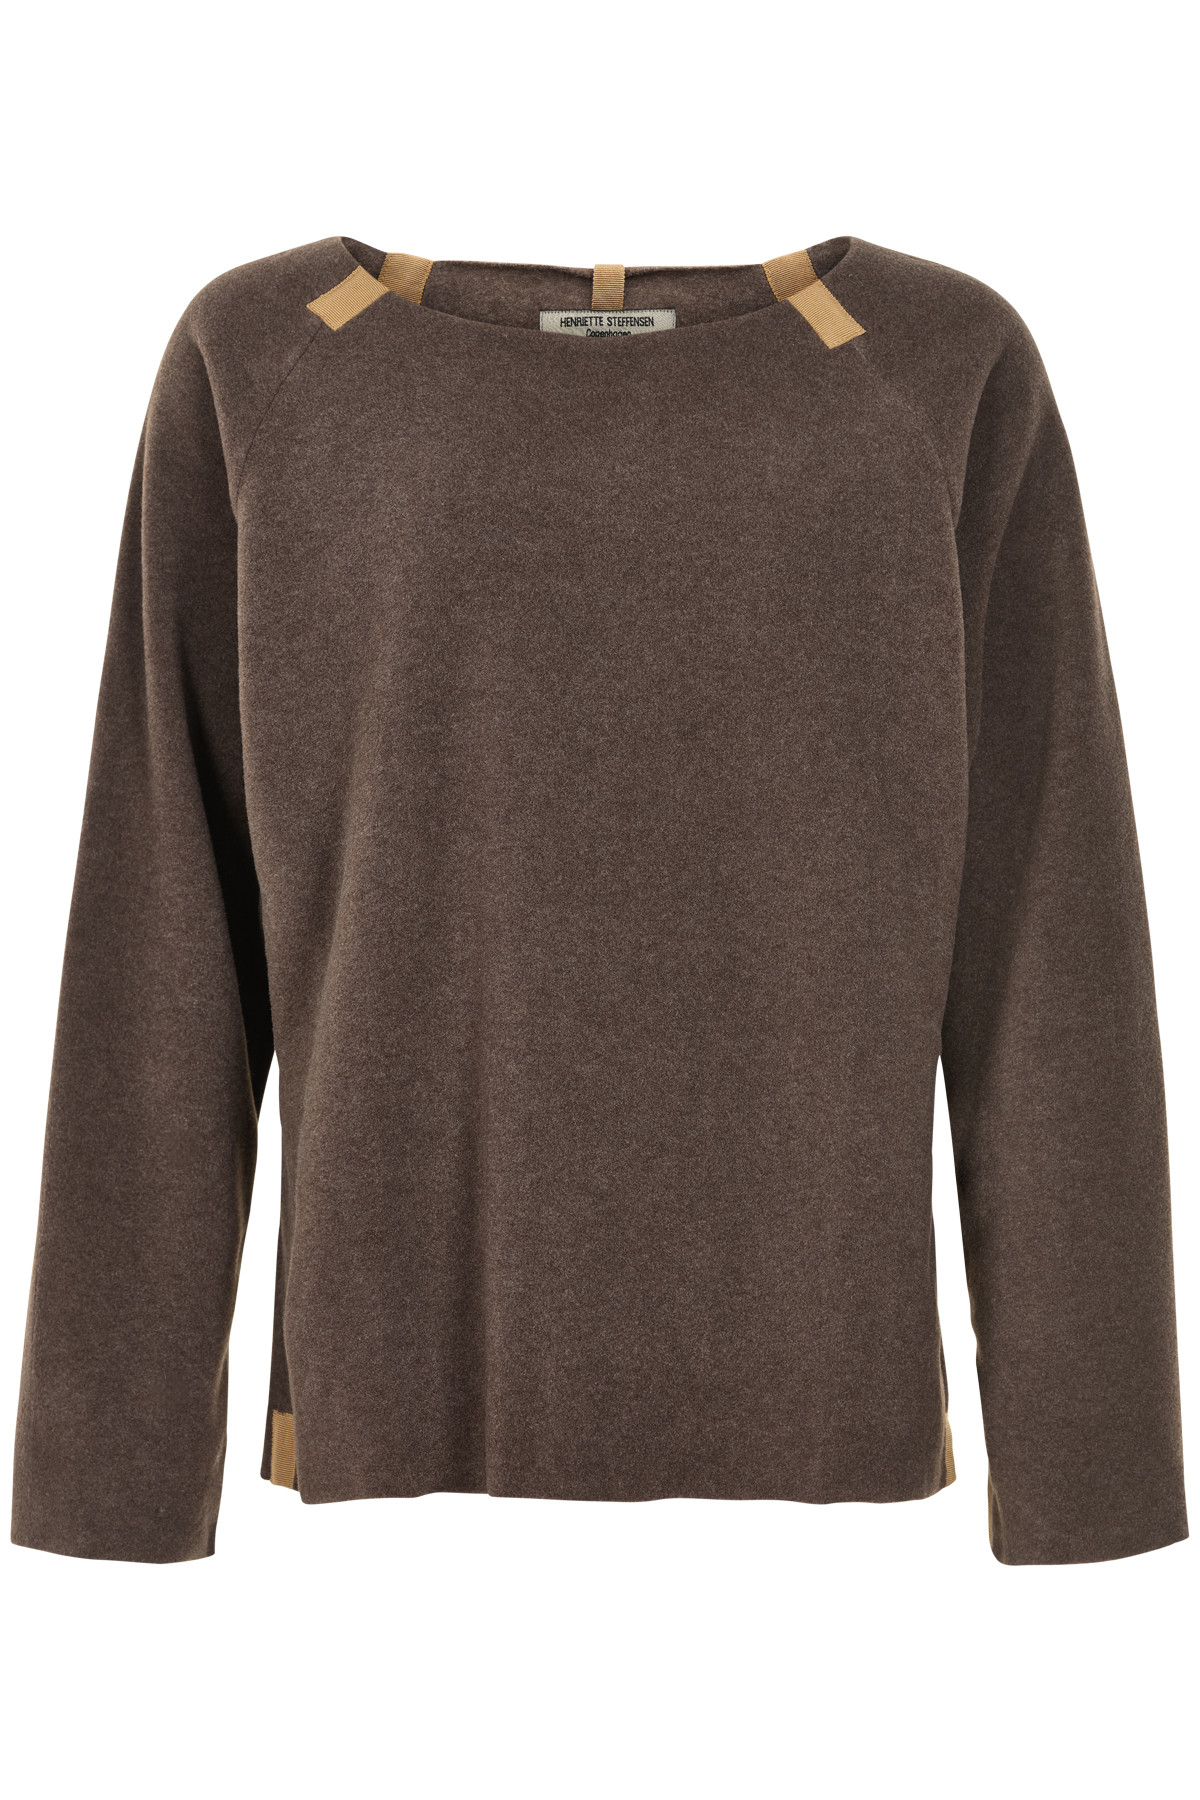 Image of   HENRIETTE STEFFENSEN Copenhagen 1290G SWEATER BROWN (Brown, S)